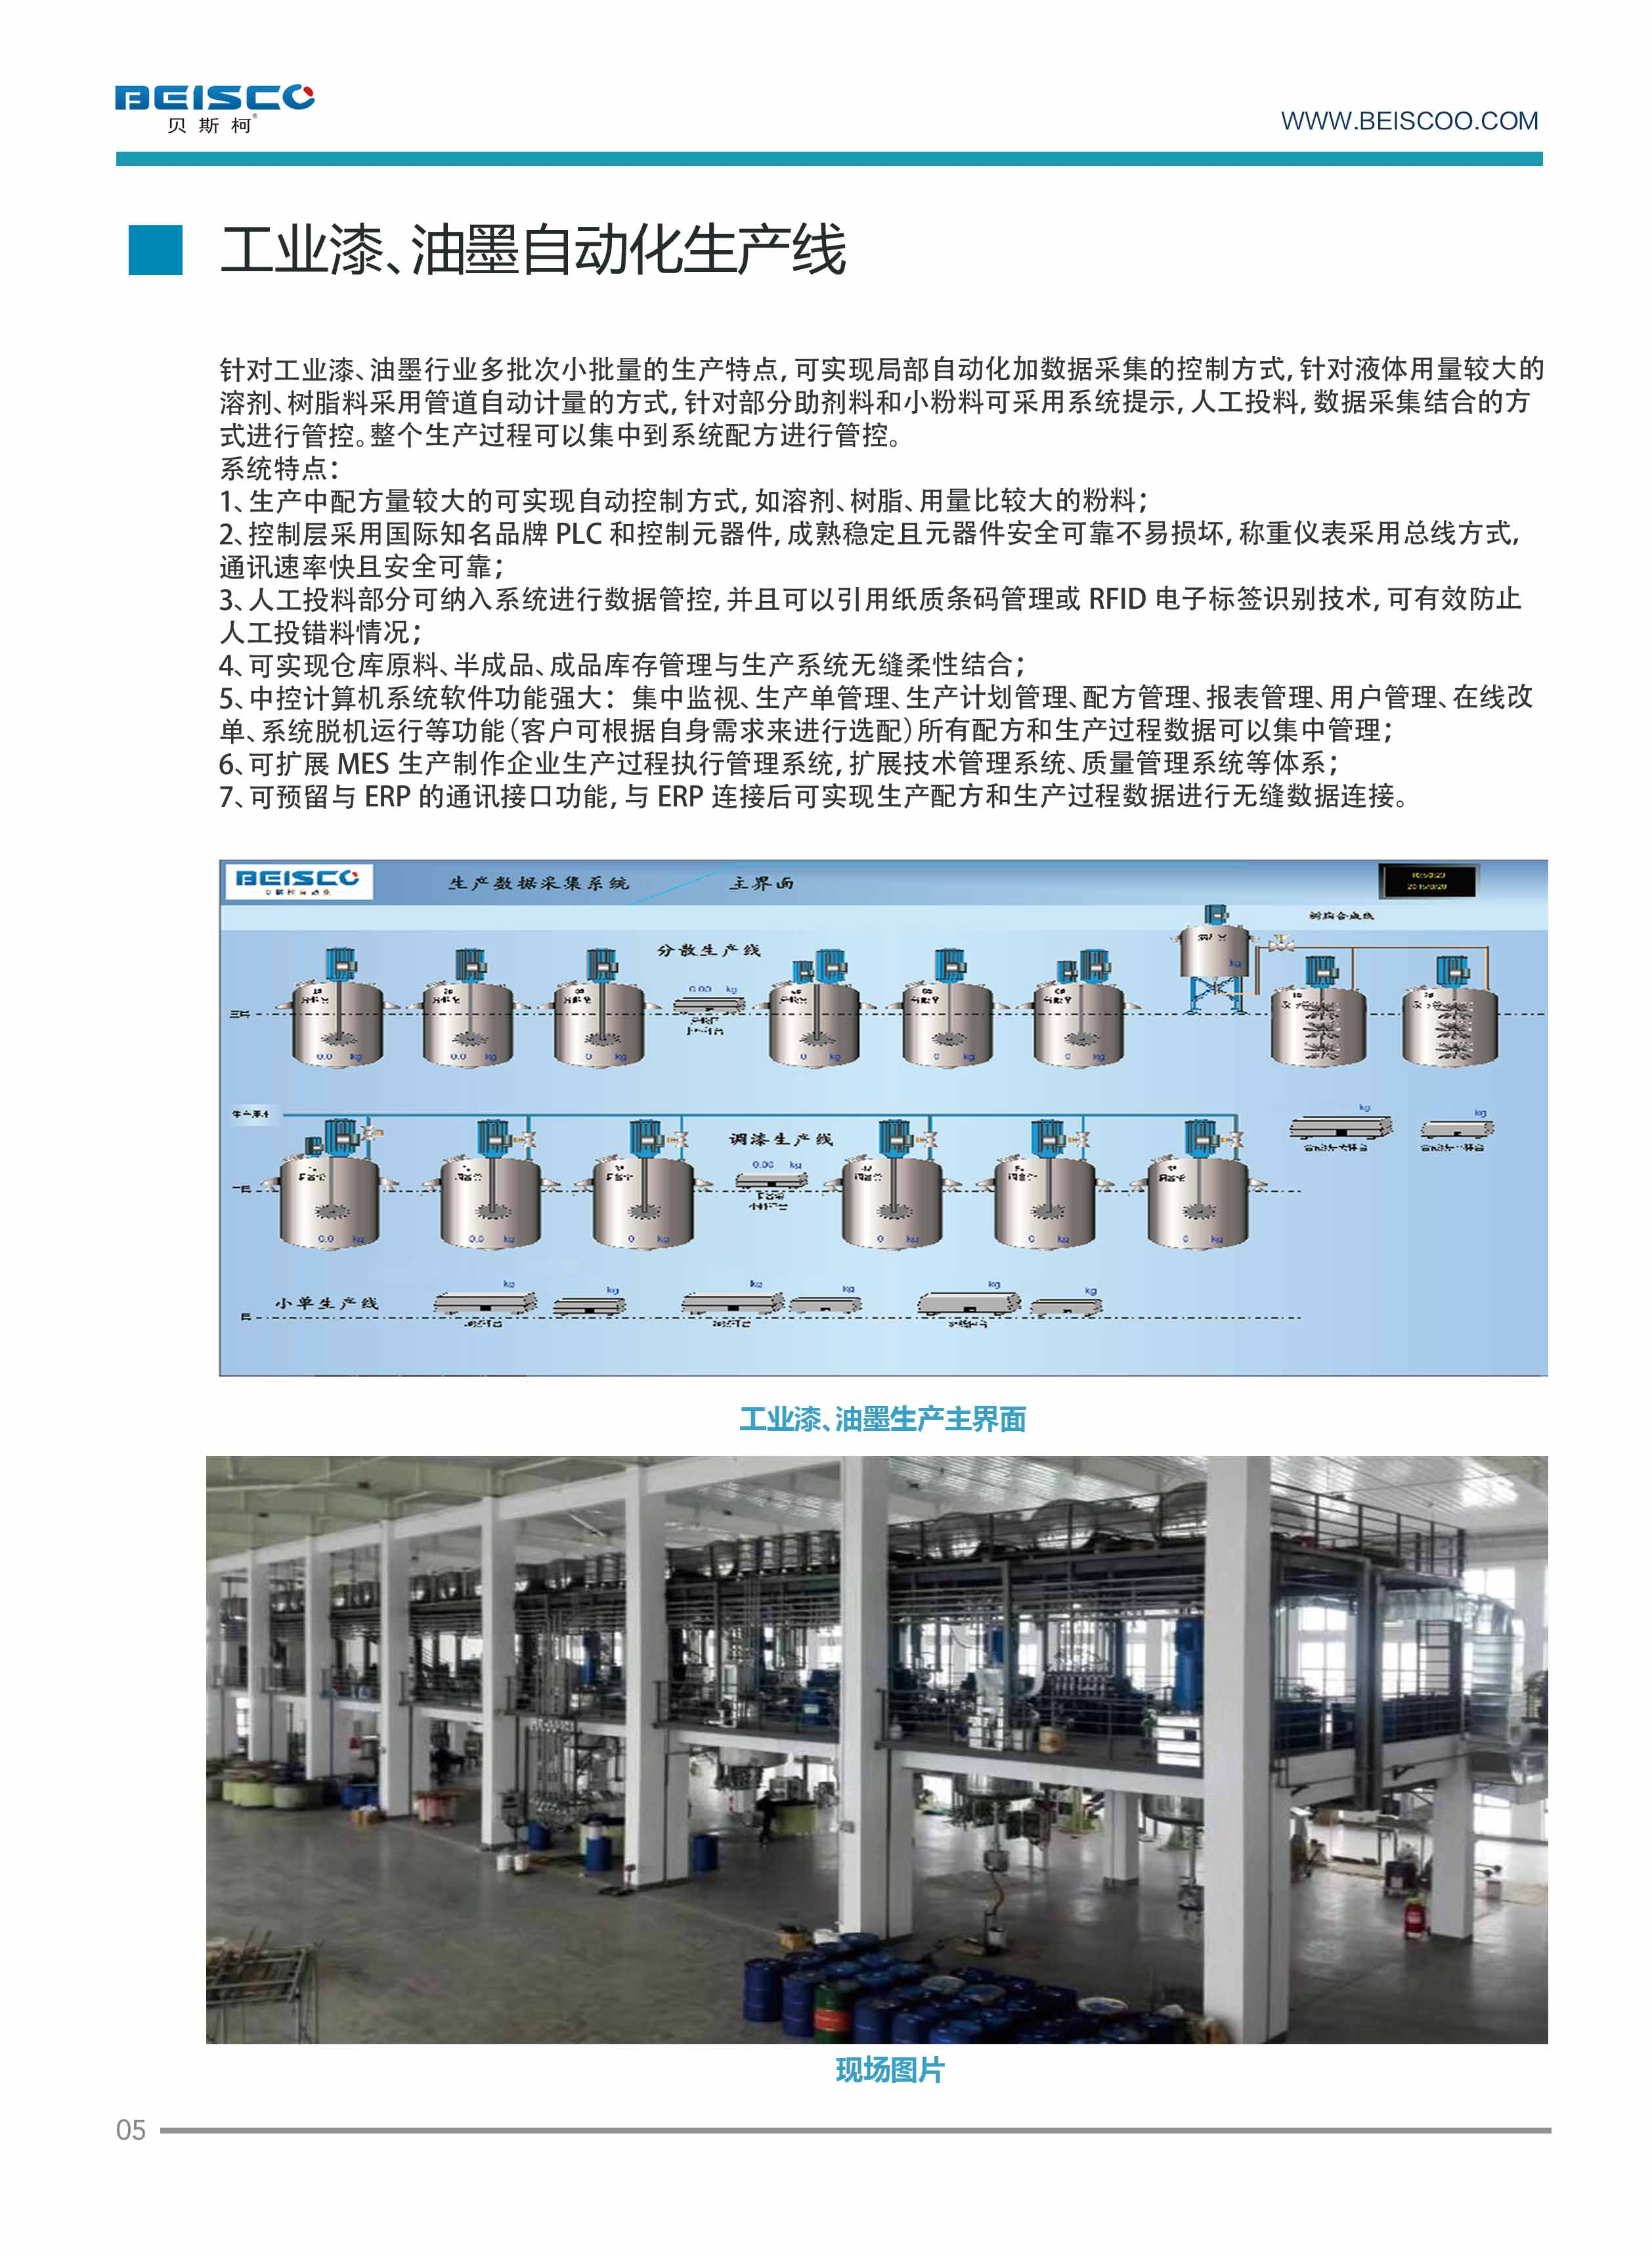 Industrial paints. Automatic ink production lines